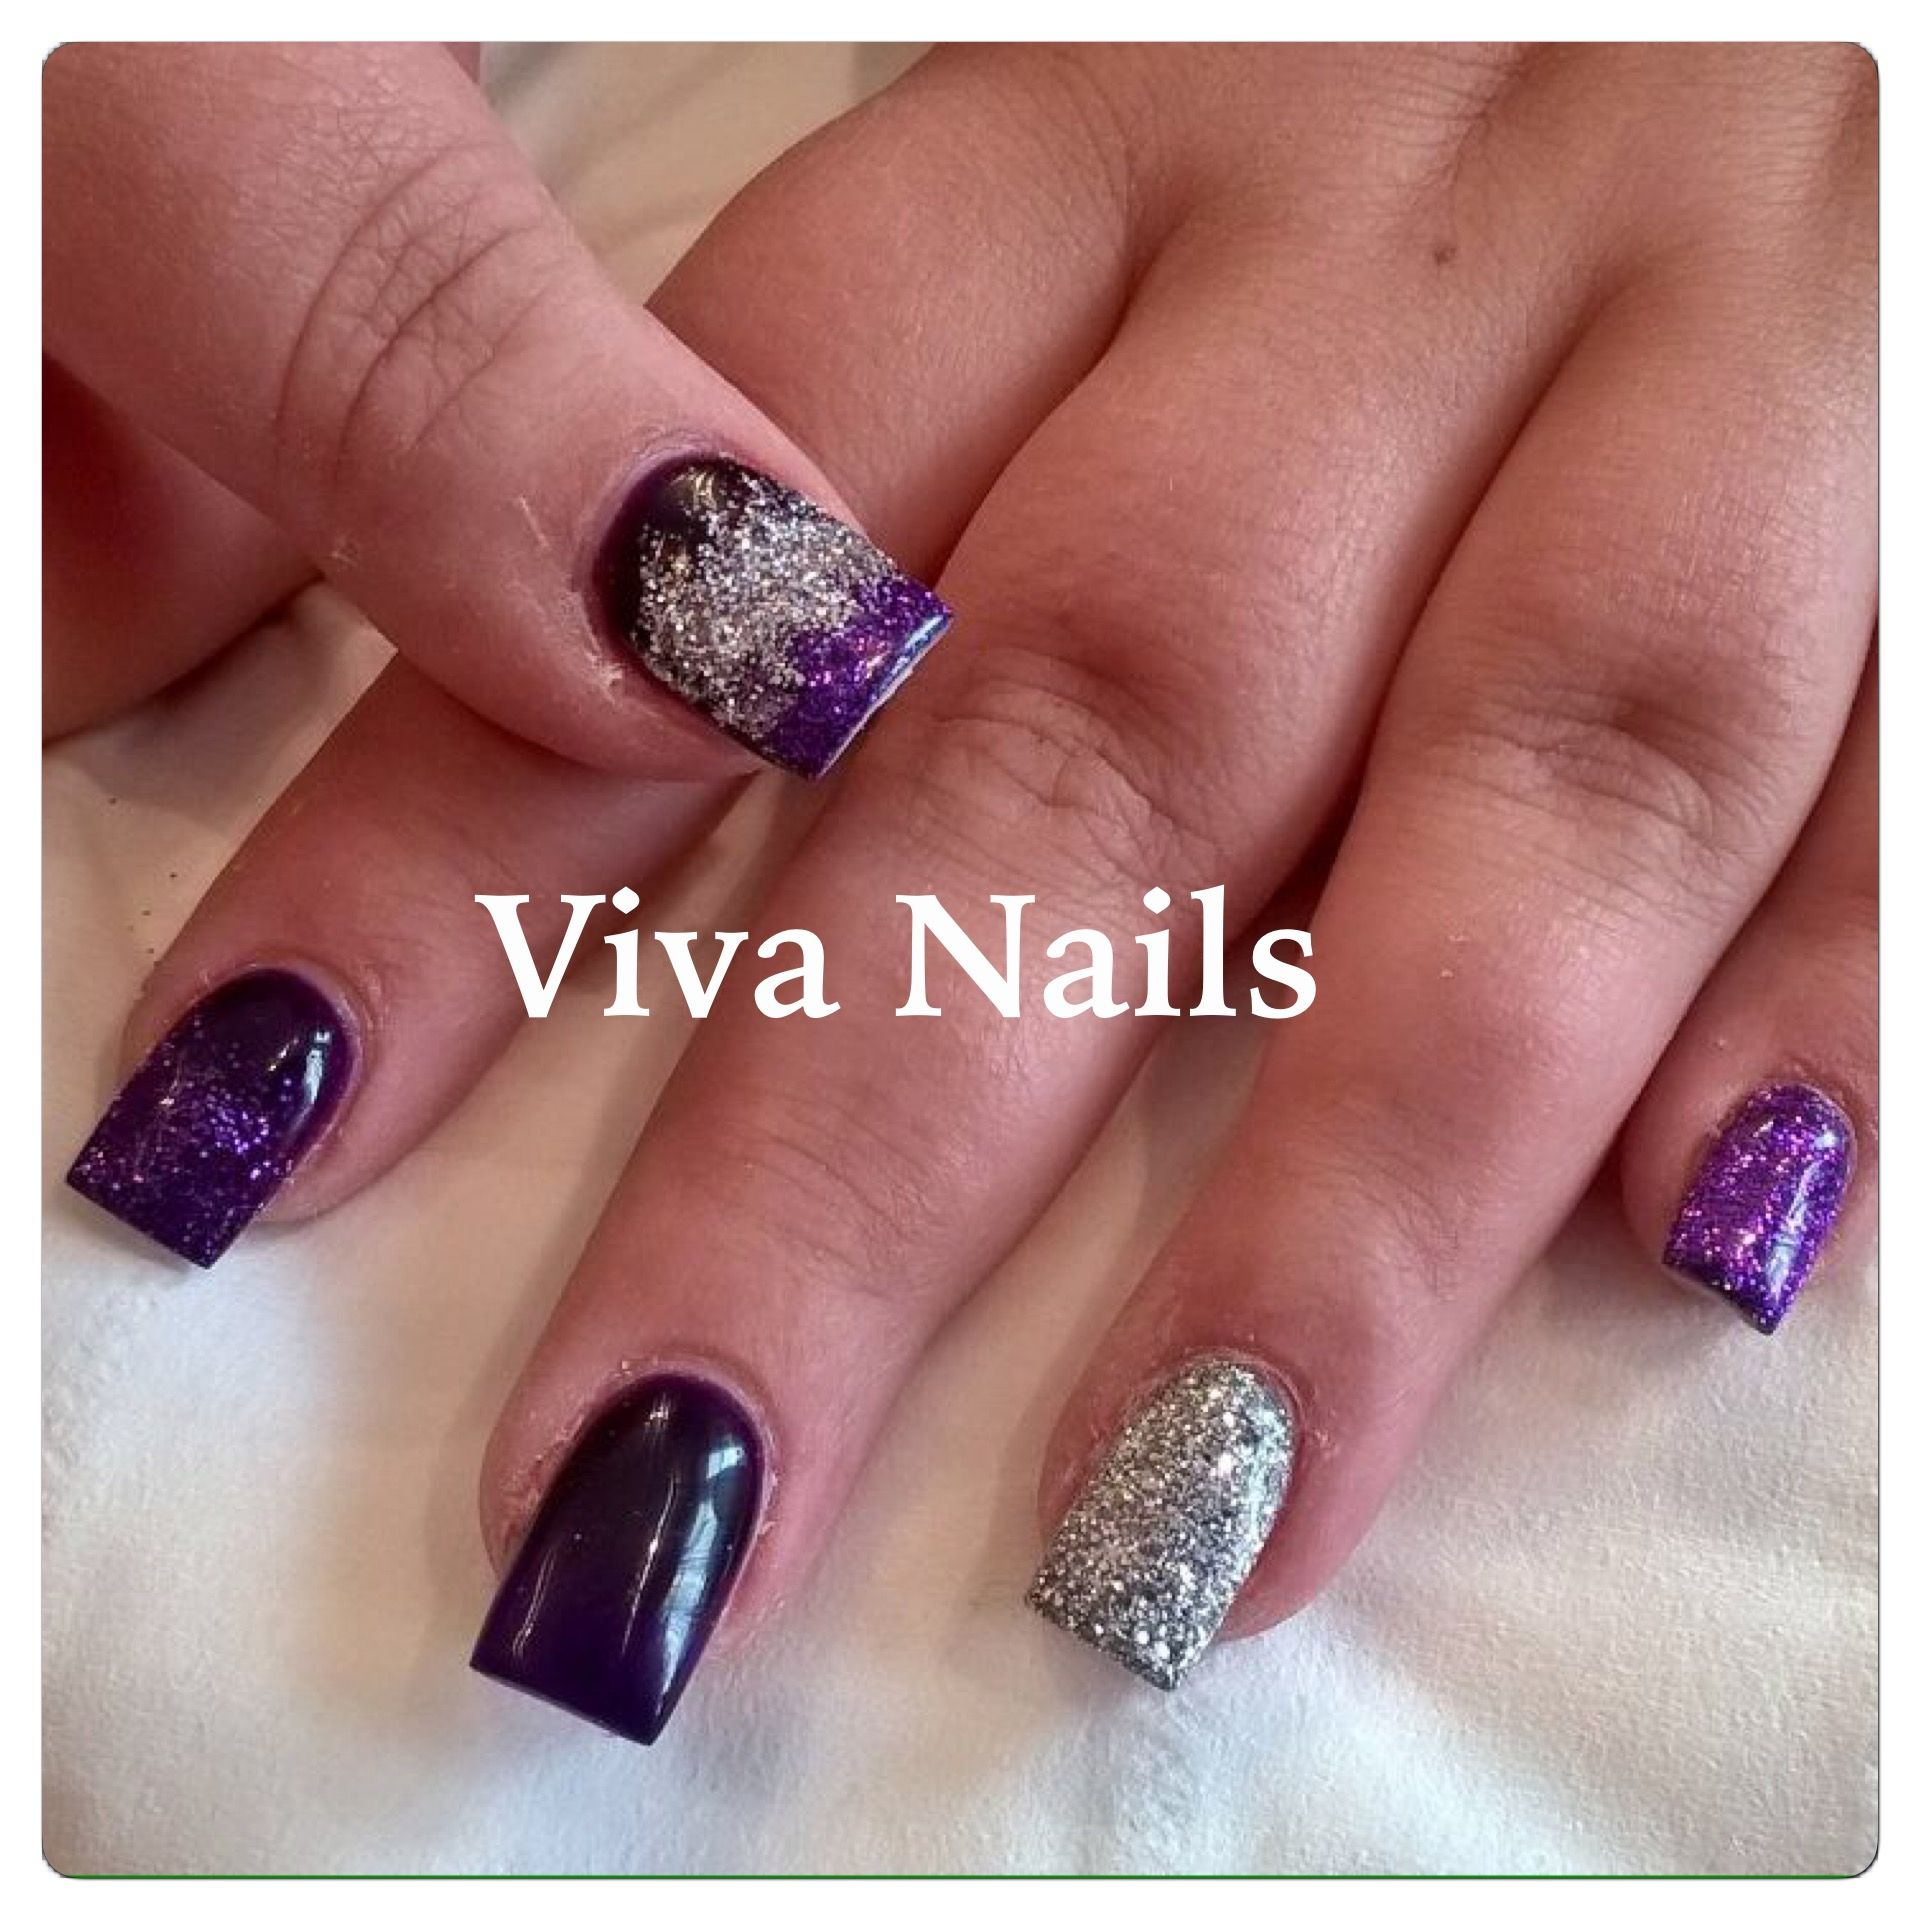 Pin By Cat Manchester On ɲails In 2020 Long Square Acrylic Nails Best Acrylic Nails Long Acrylic Nails